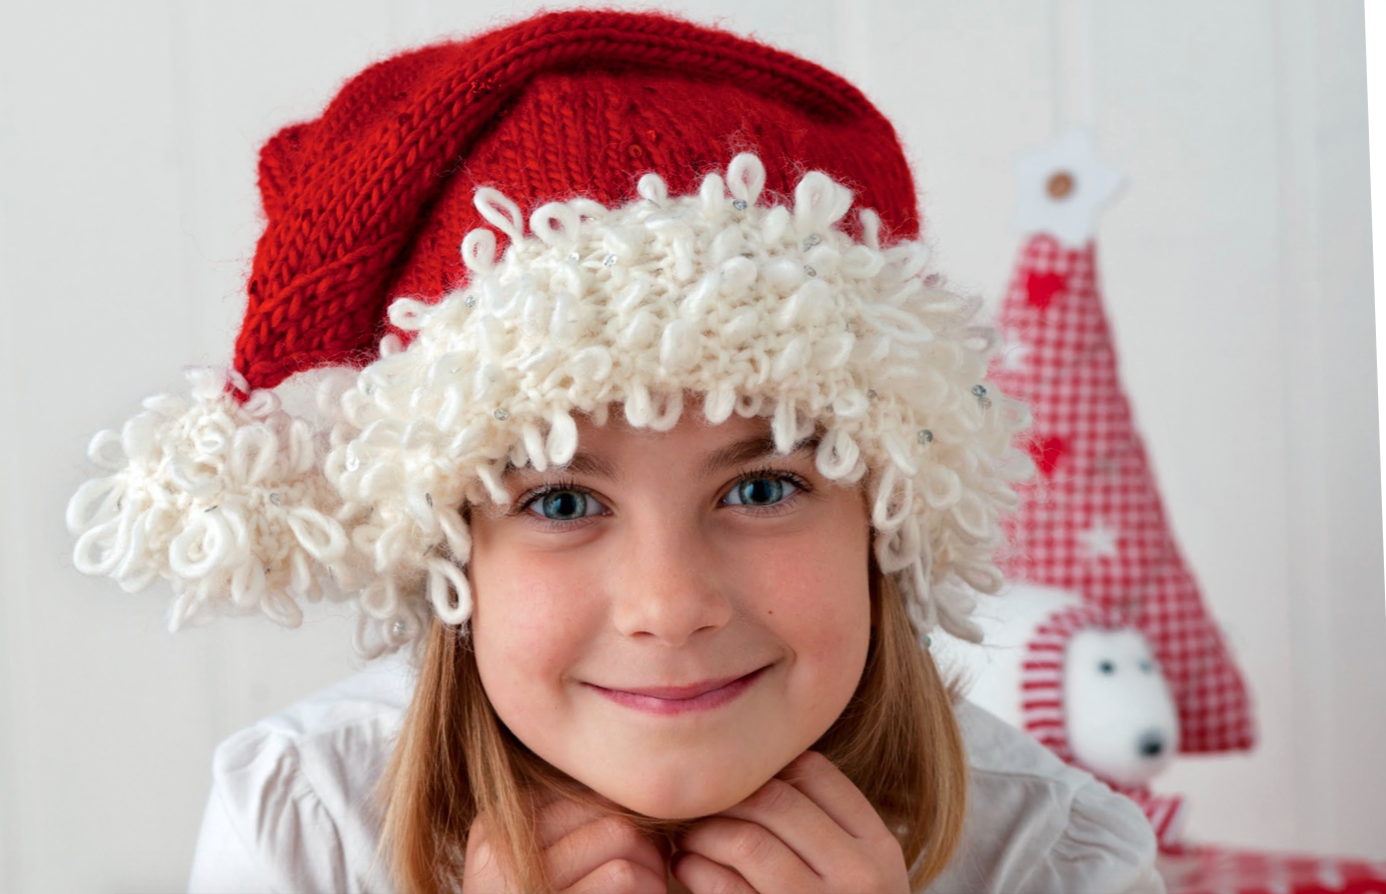 100+ Free Christmas Knitting Patterns - The Ultimate Resource